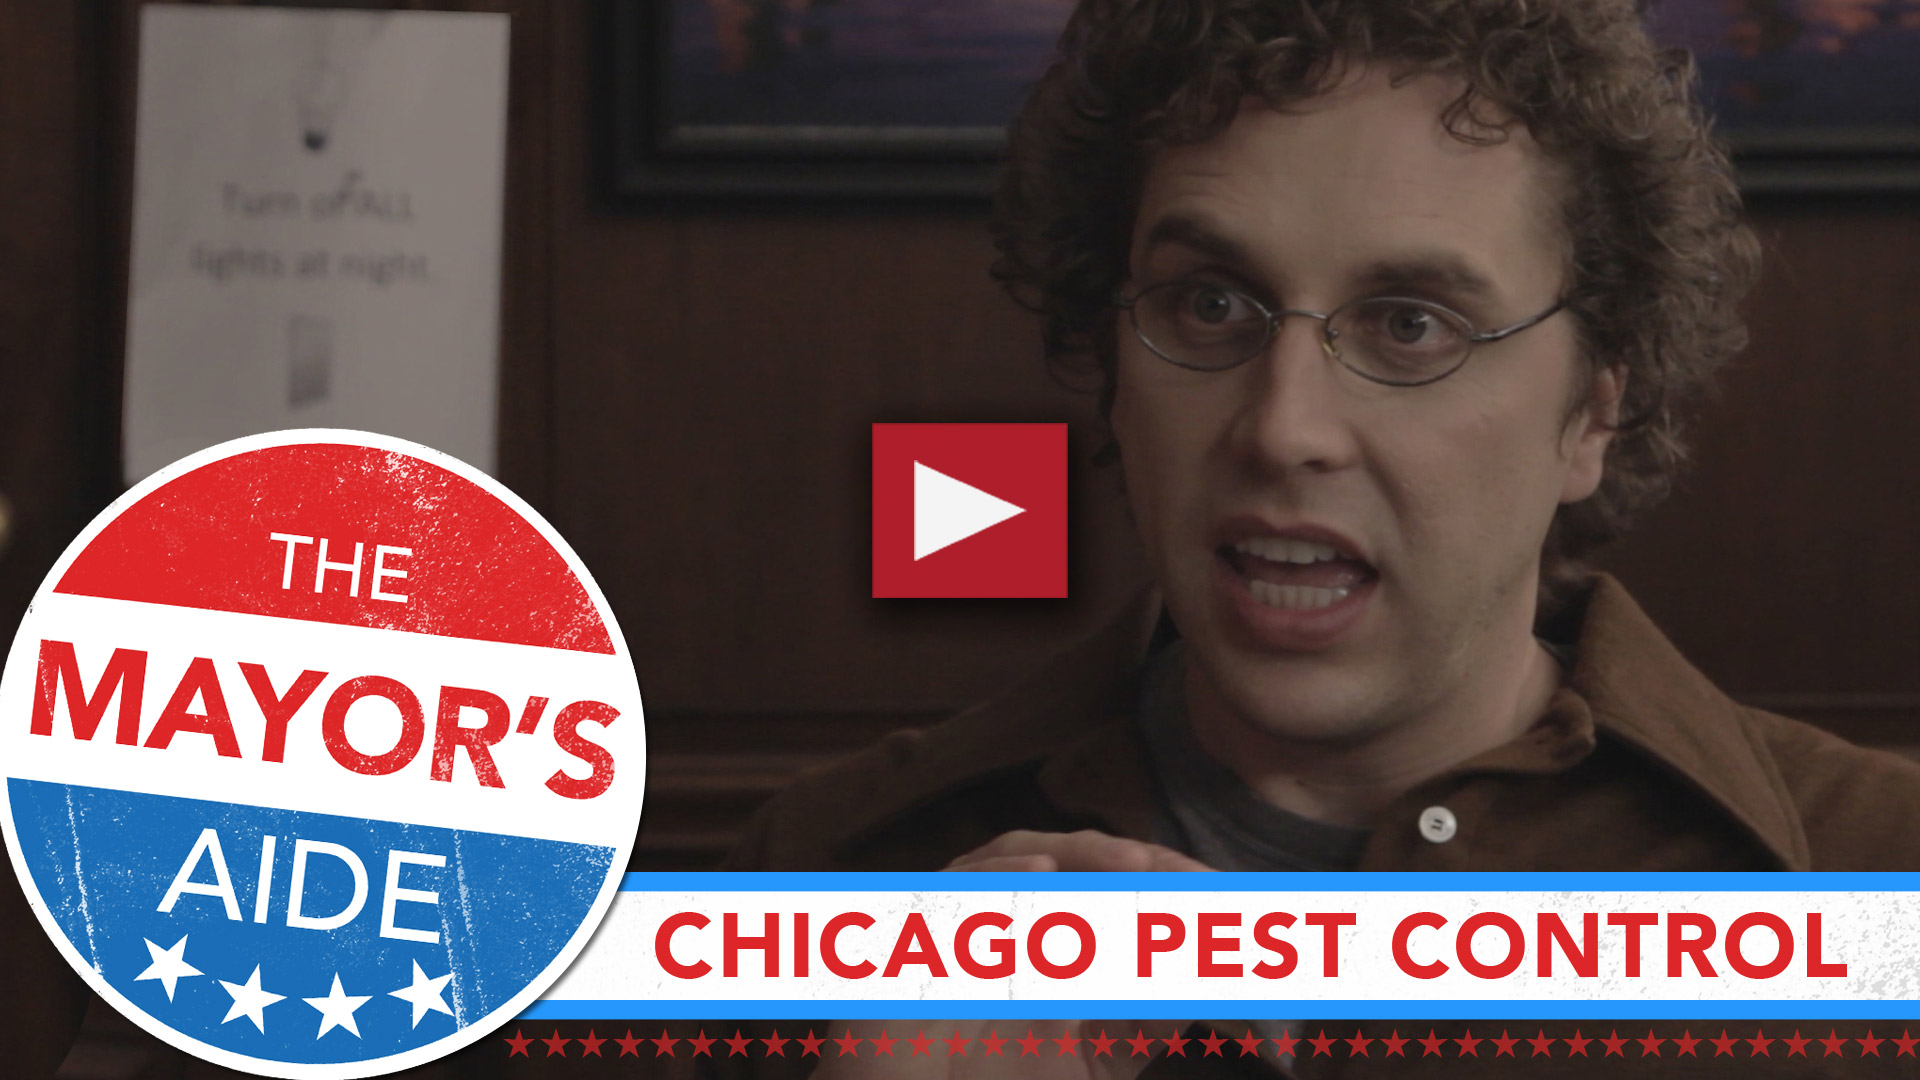 The Mayor's Aide – Chicago Pest Control